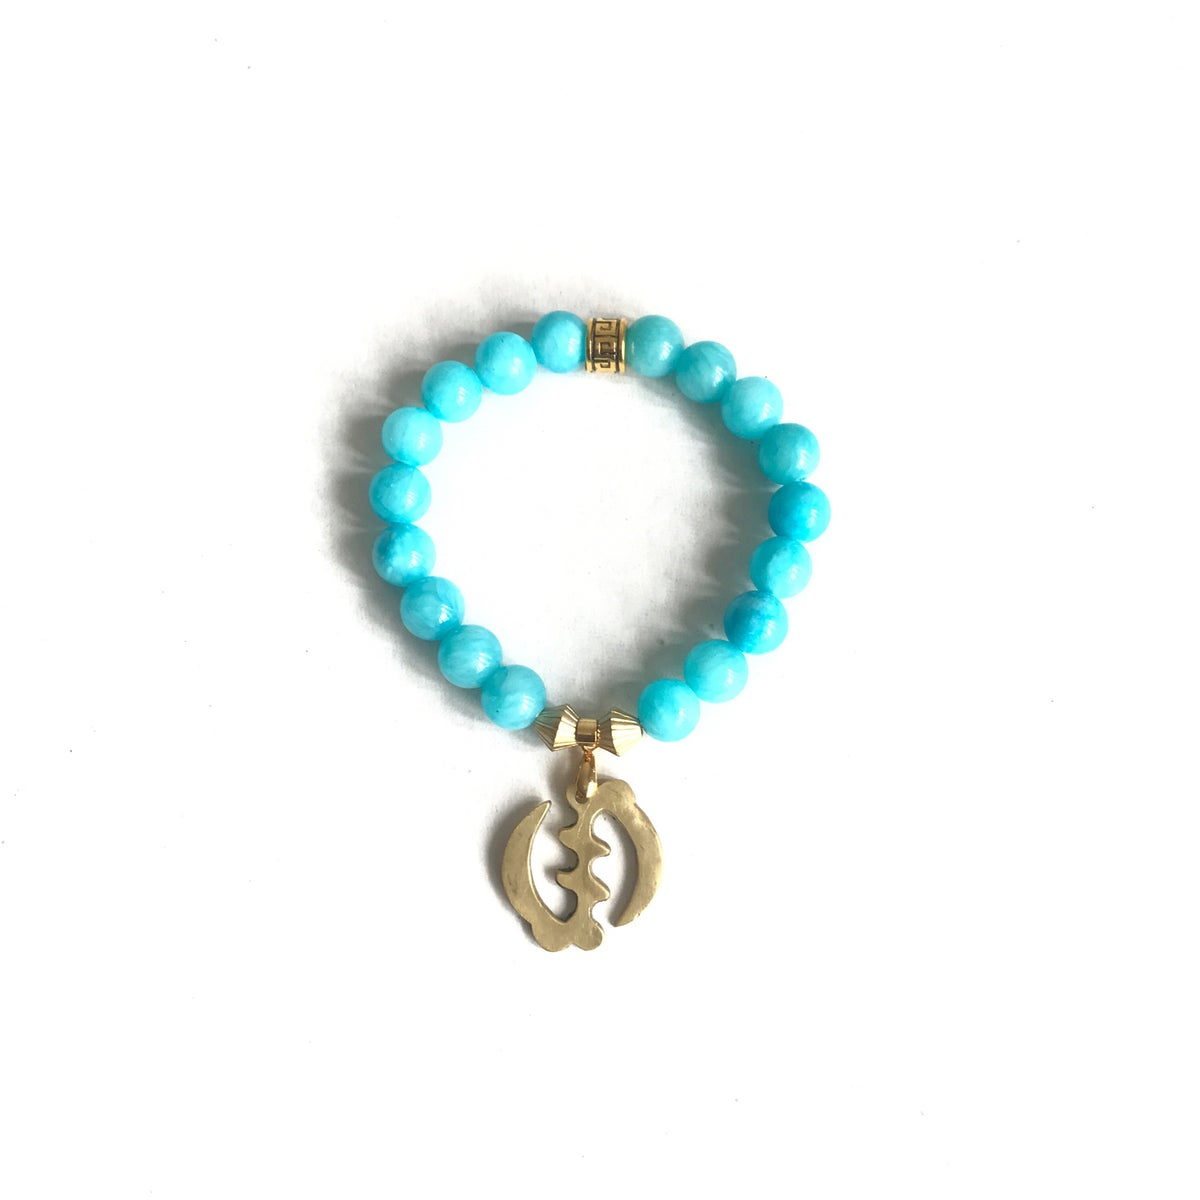 Image of Ashanti Beads Bracelet